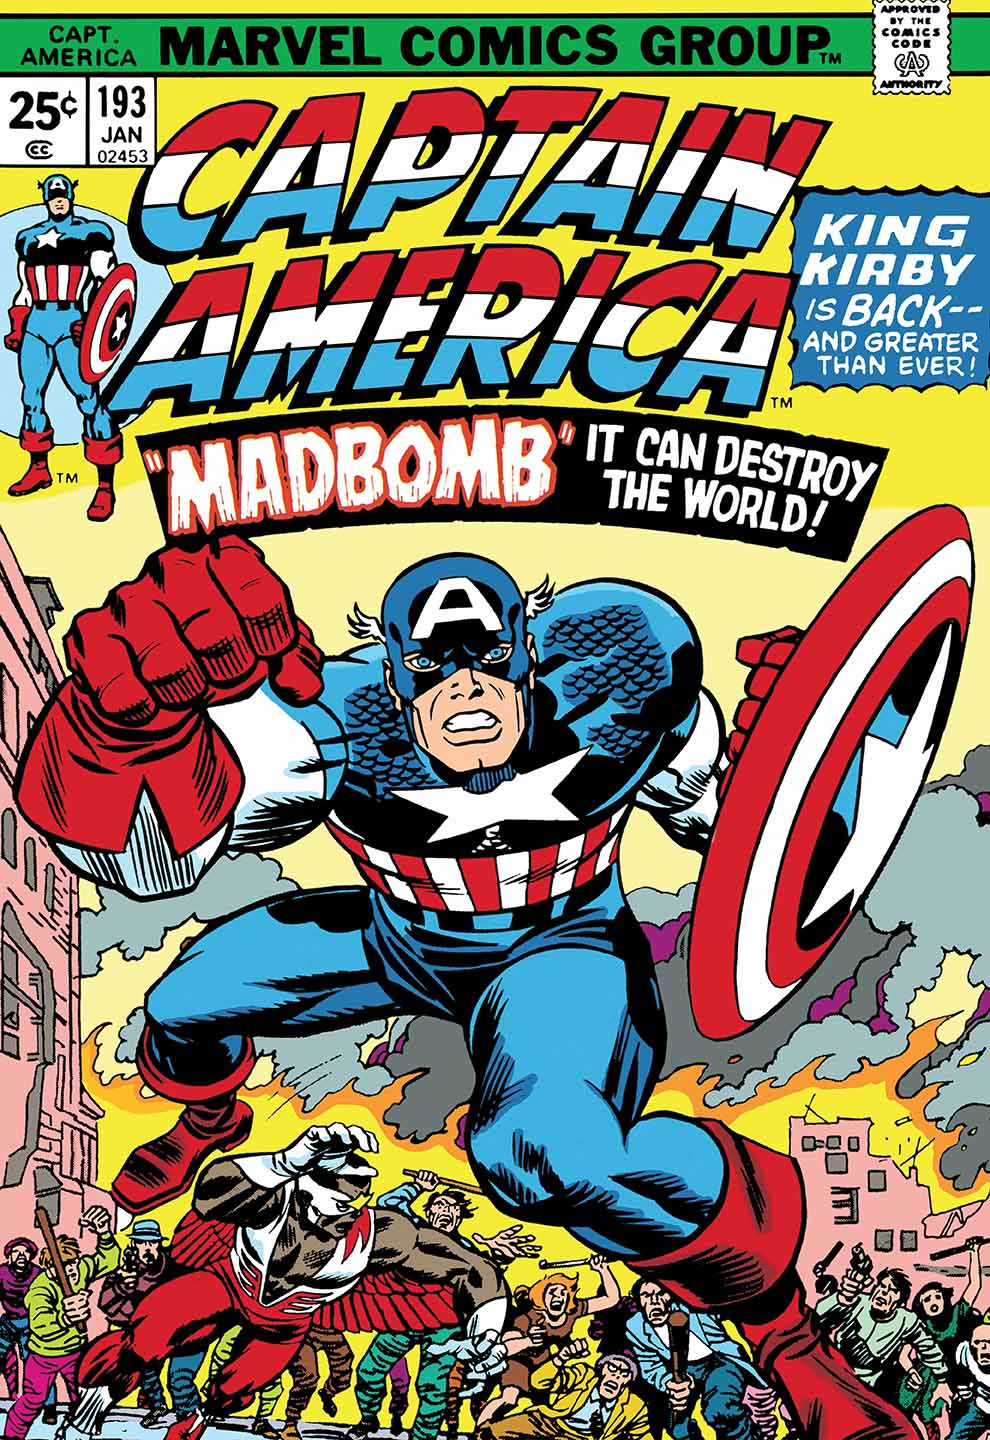 Captain America Number 193 - 'Madbomb'